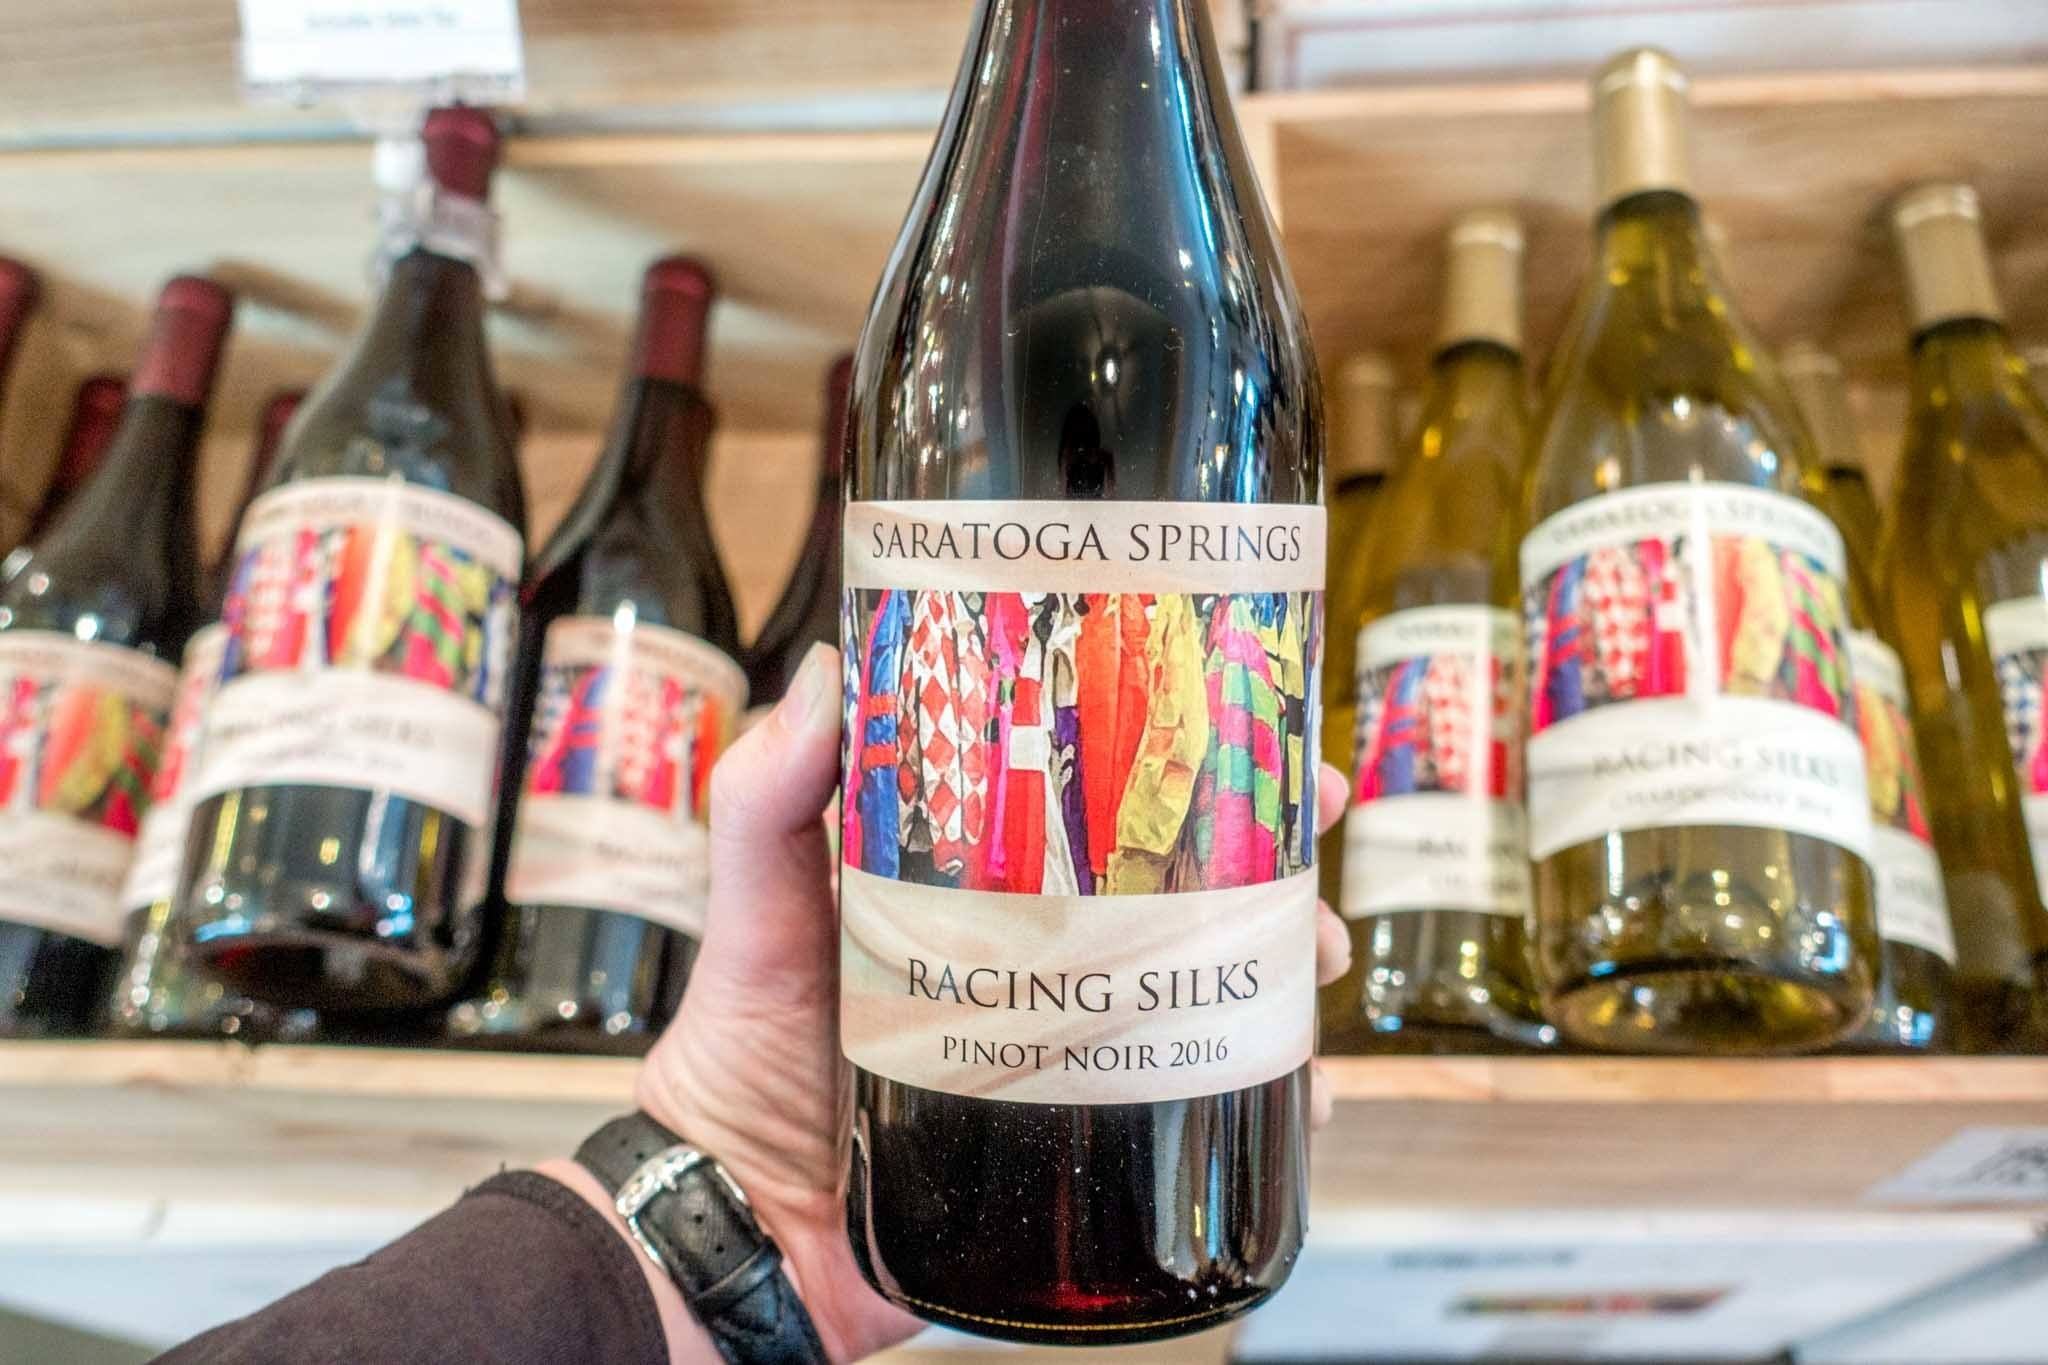 Bottle of Saratoga Springs Racing Silks wine